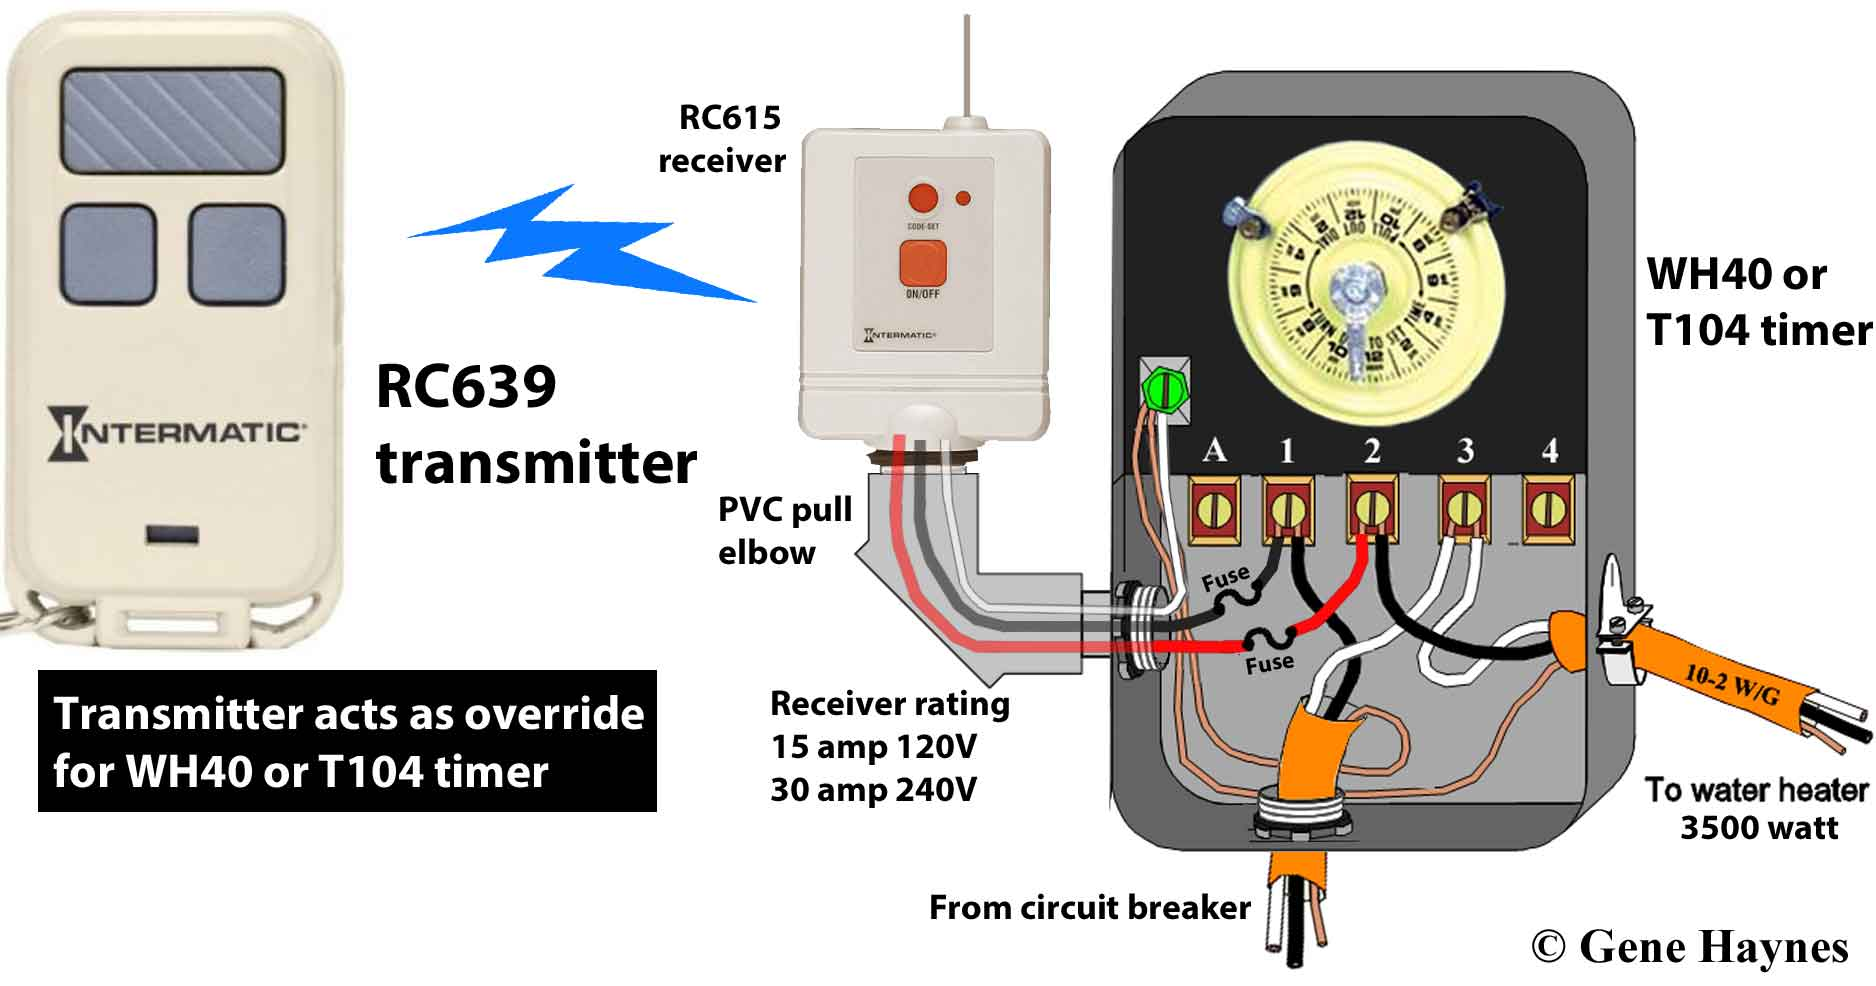 pool timer wiring diagram intermatic modine gas heater how to wire t104 and t103 t101 timers rc939 transmitter rc613 receiver wh40 or